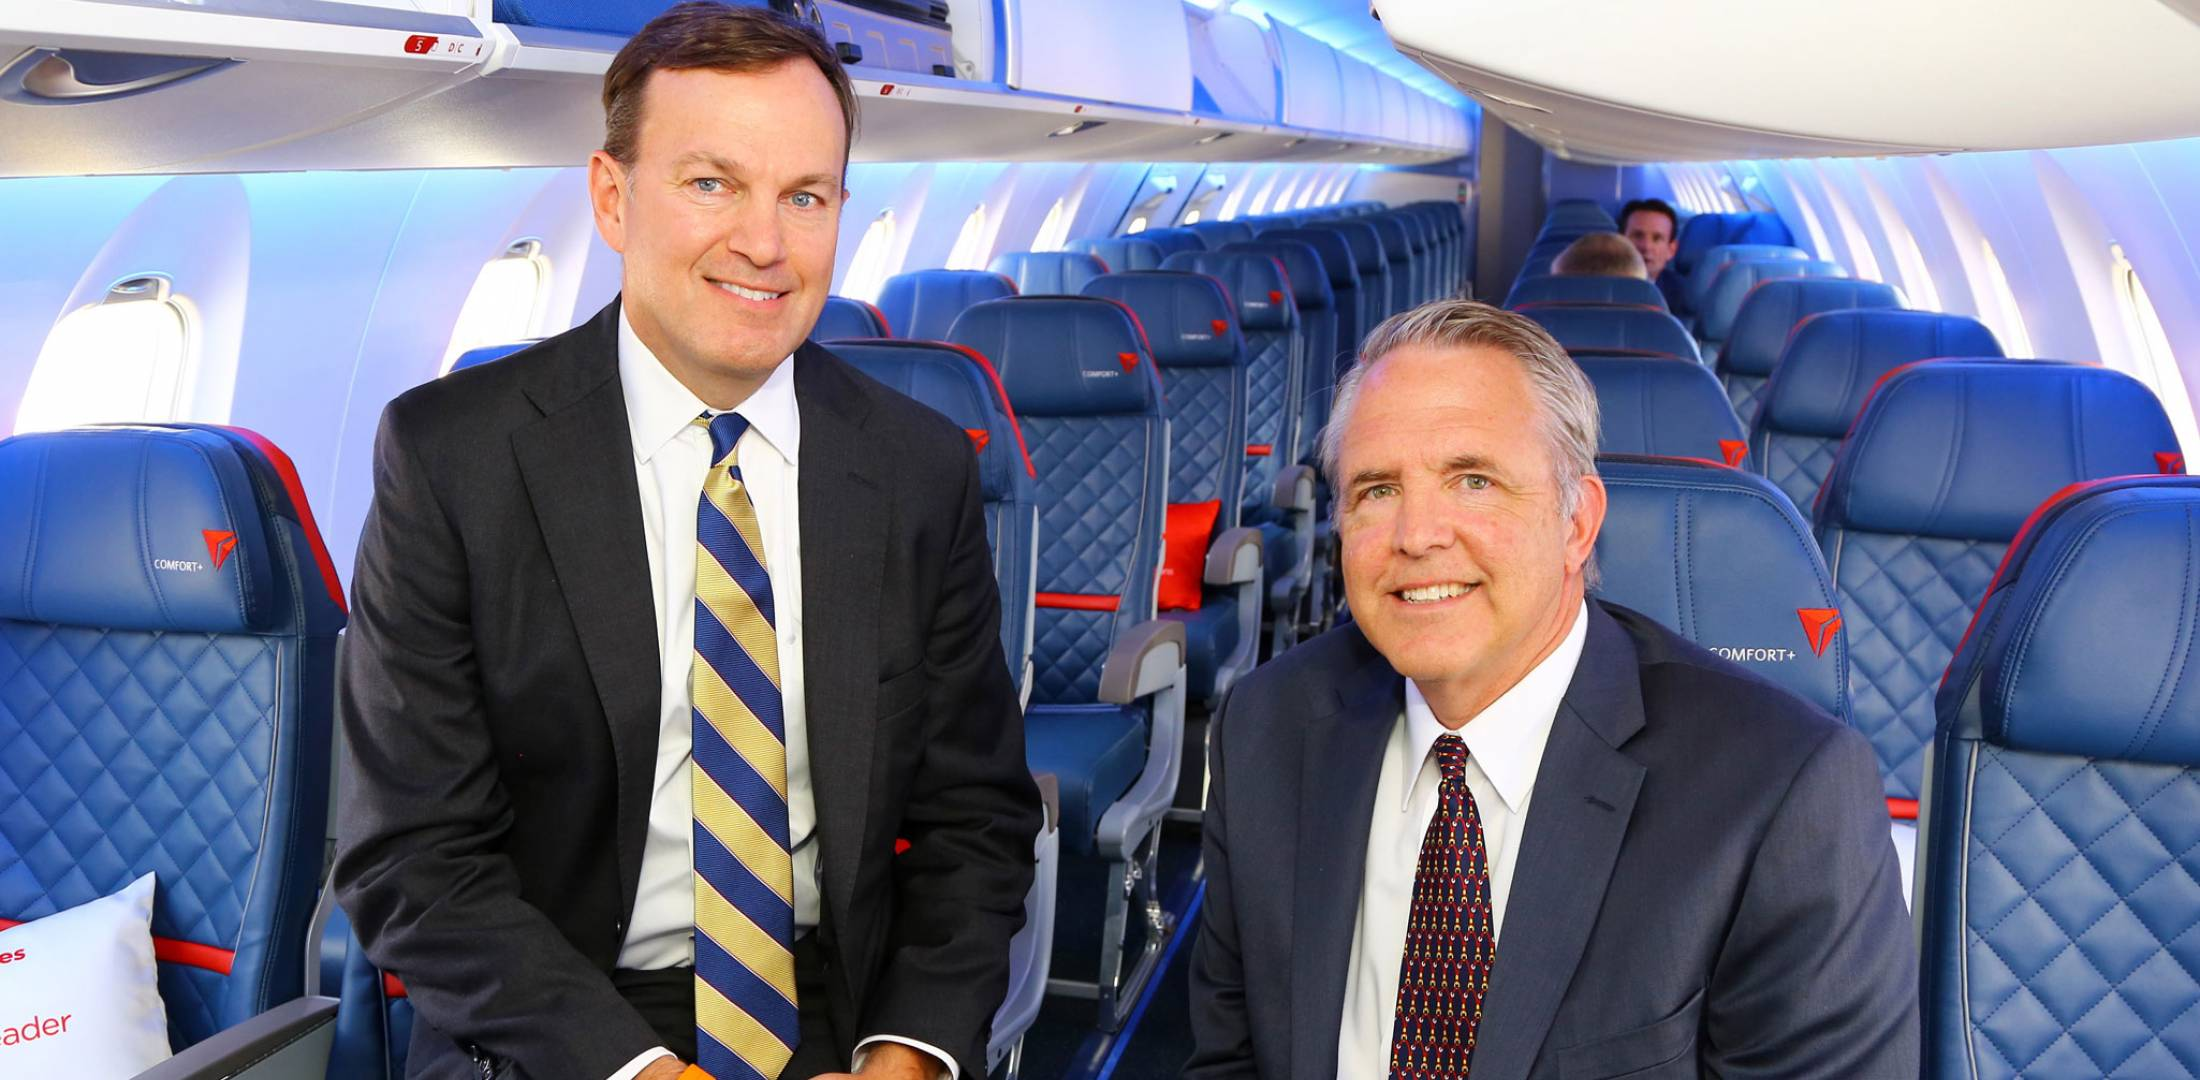 two men sitting in an aircraft cabin